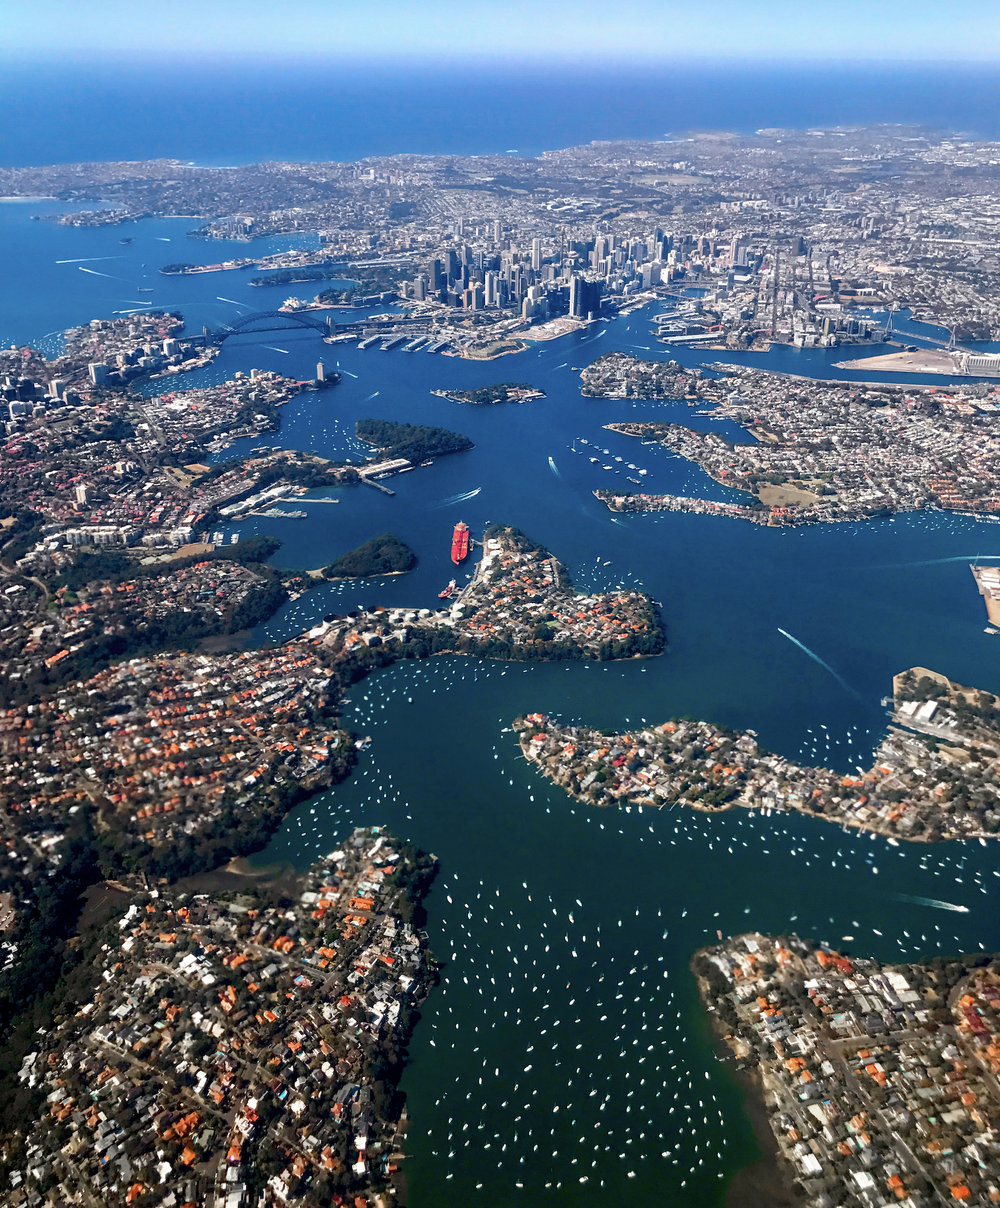 Check out this stunning view of Sydney, Australia. The city is the most populous on the continent with more than five million residents. The geography of the city - located on the Tasman city and built around numerous harbors and inlets - is beautifully captured in this photo.  33°51′54″S 151°12′34″E  Image shot from an airplane by Tiarne Hawkins